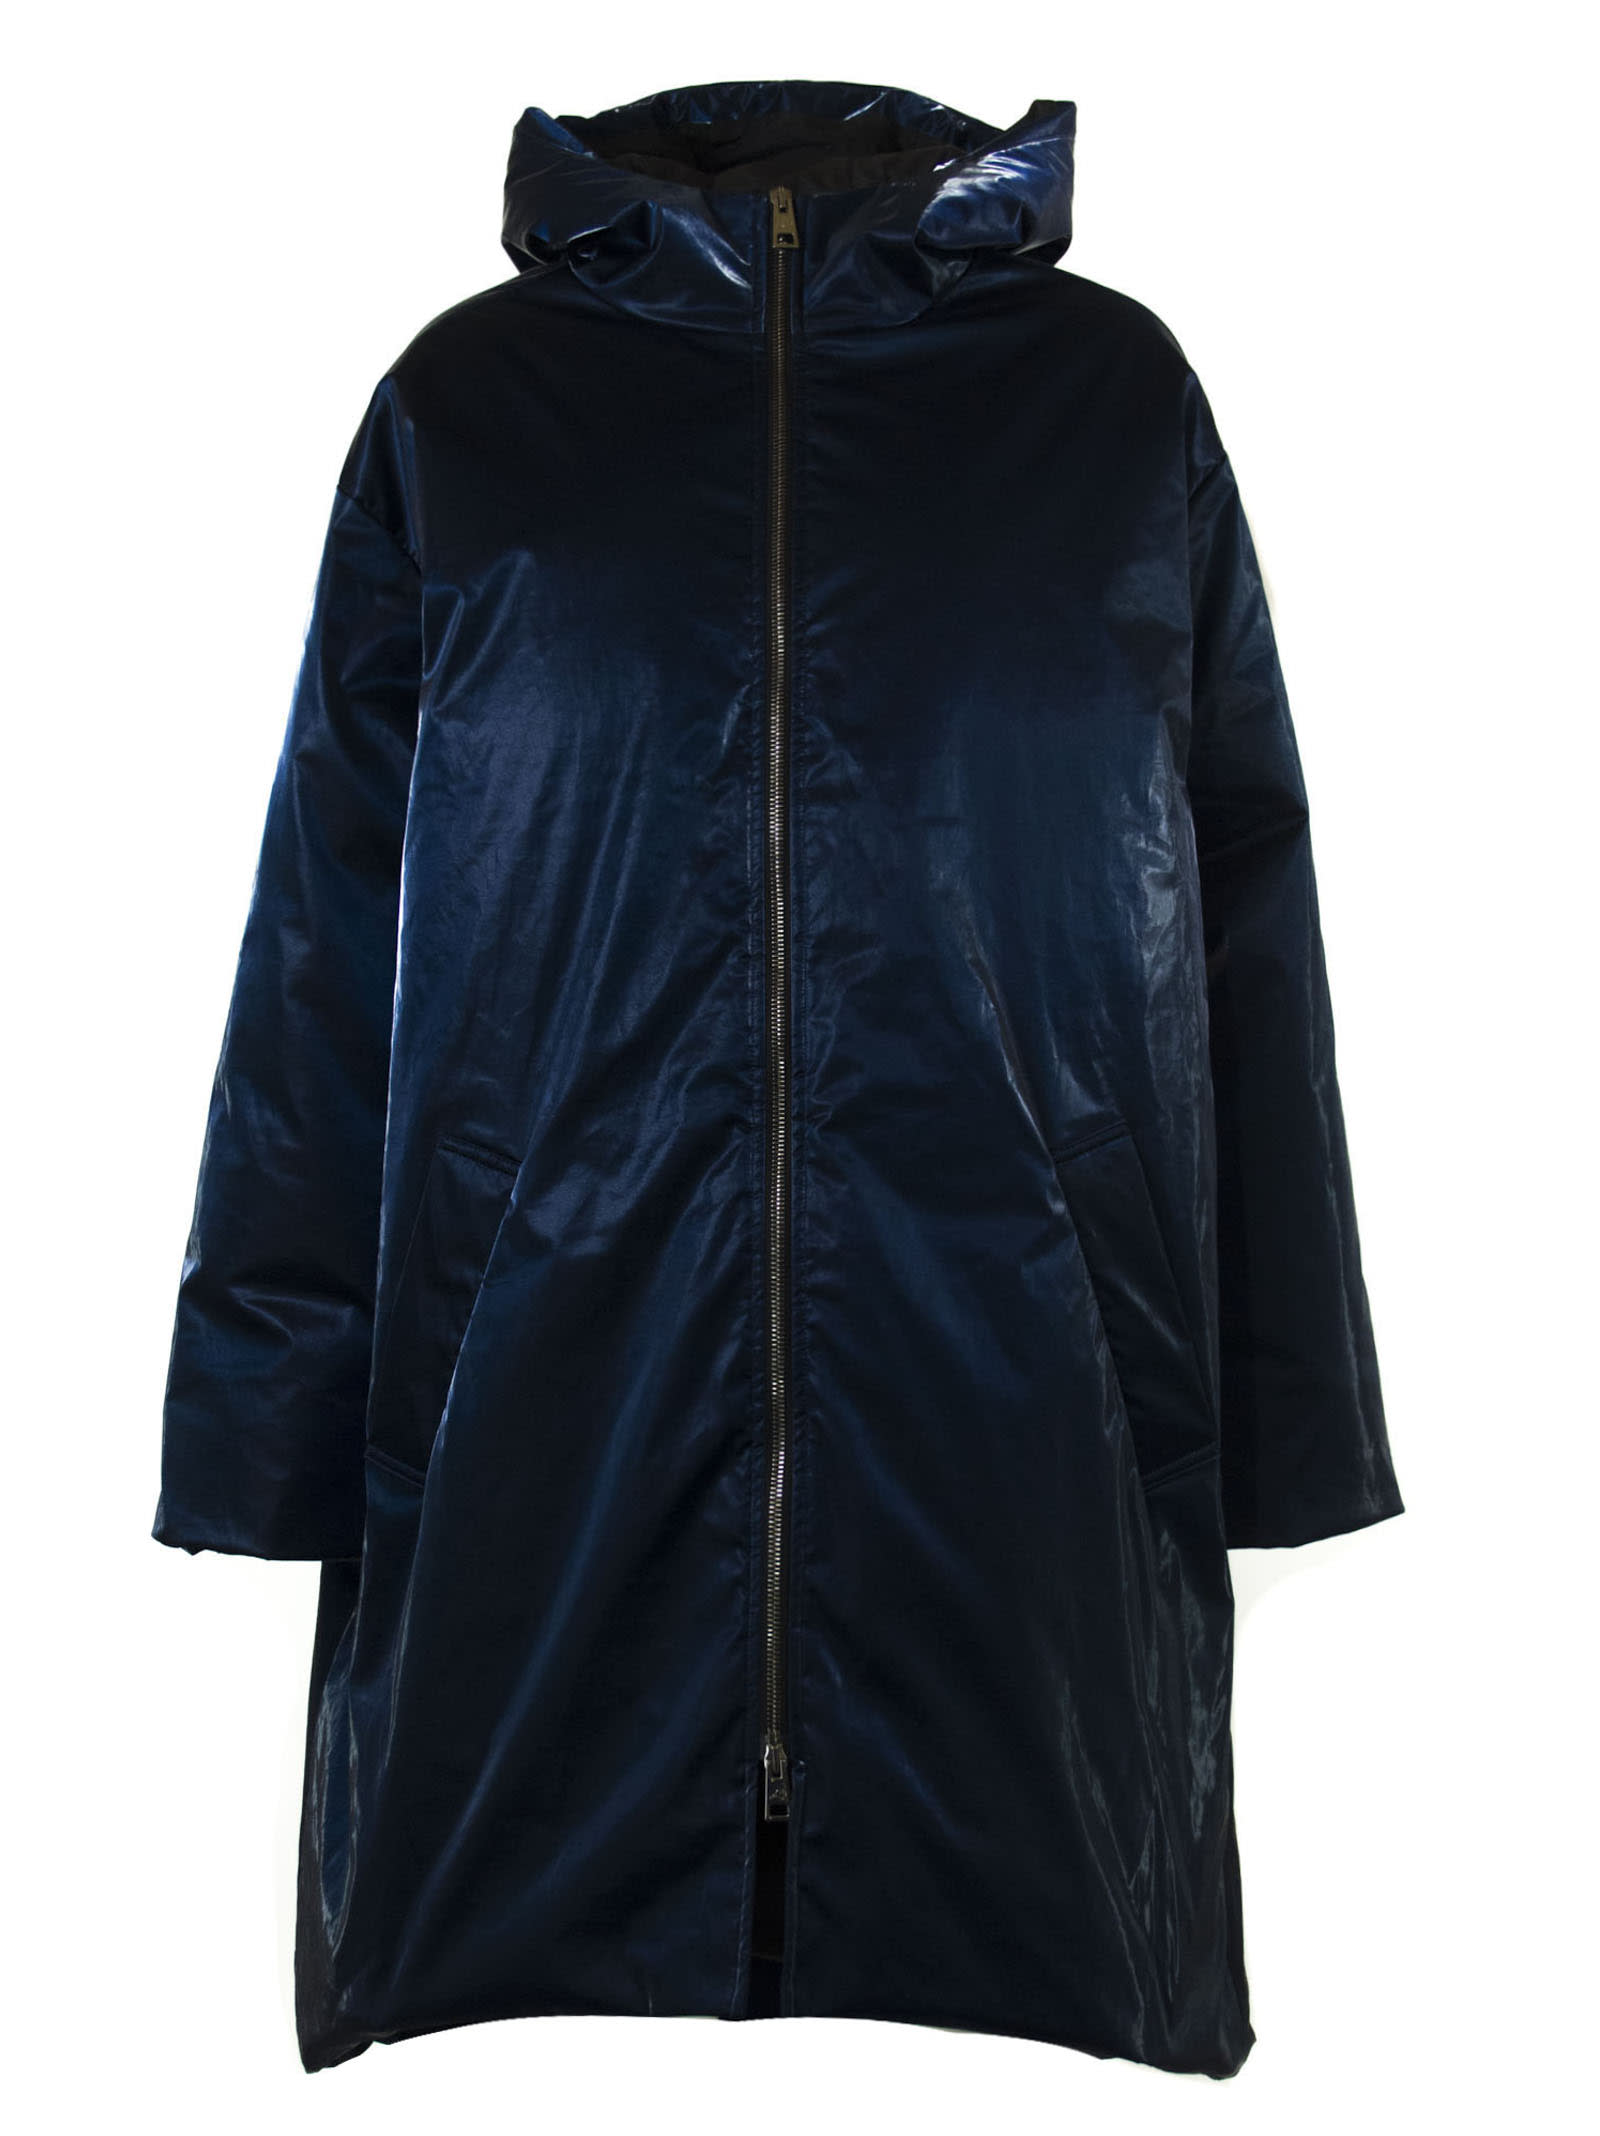 Goose Tech Midnight Blue Cotton Blend Jacket